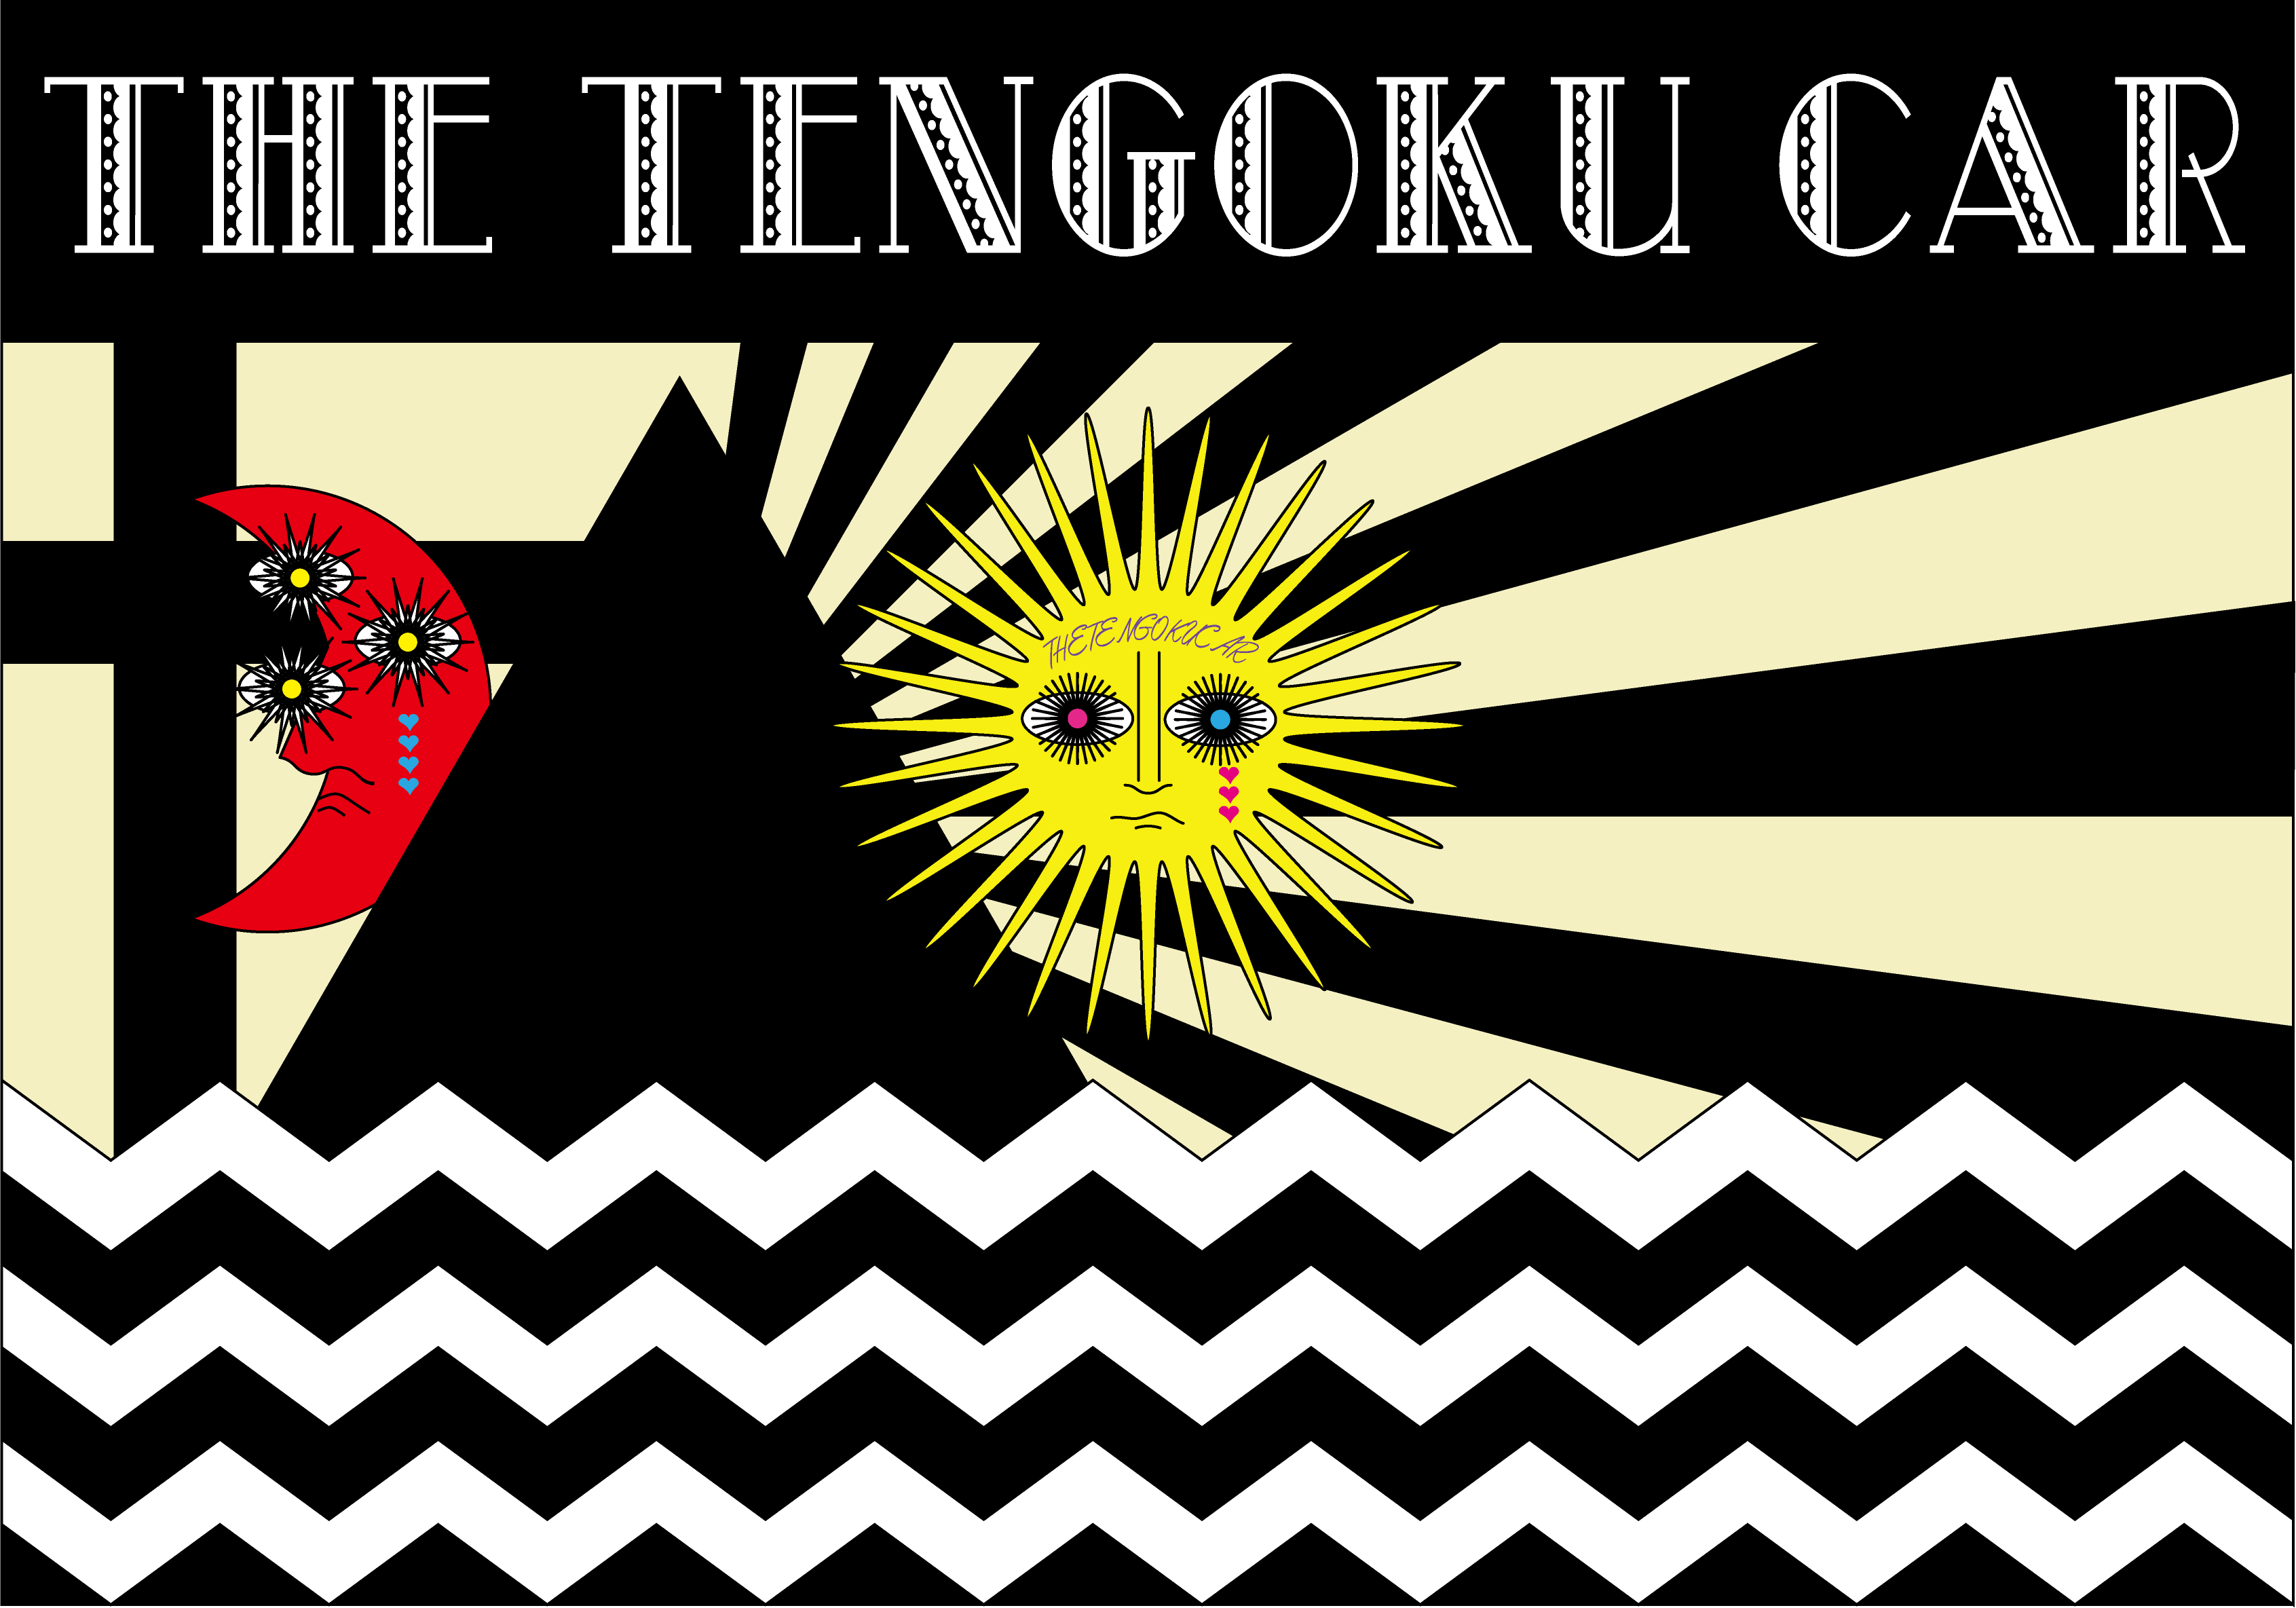 THE天国カー Official web site